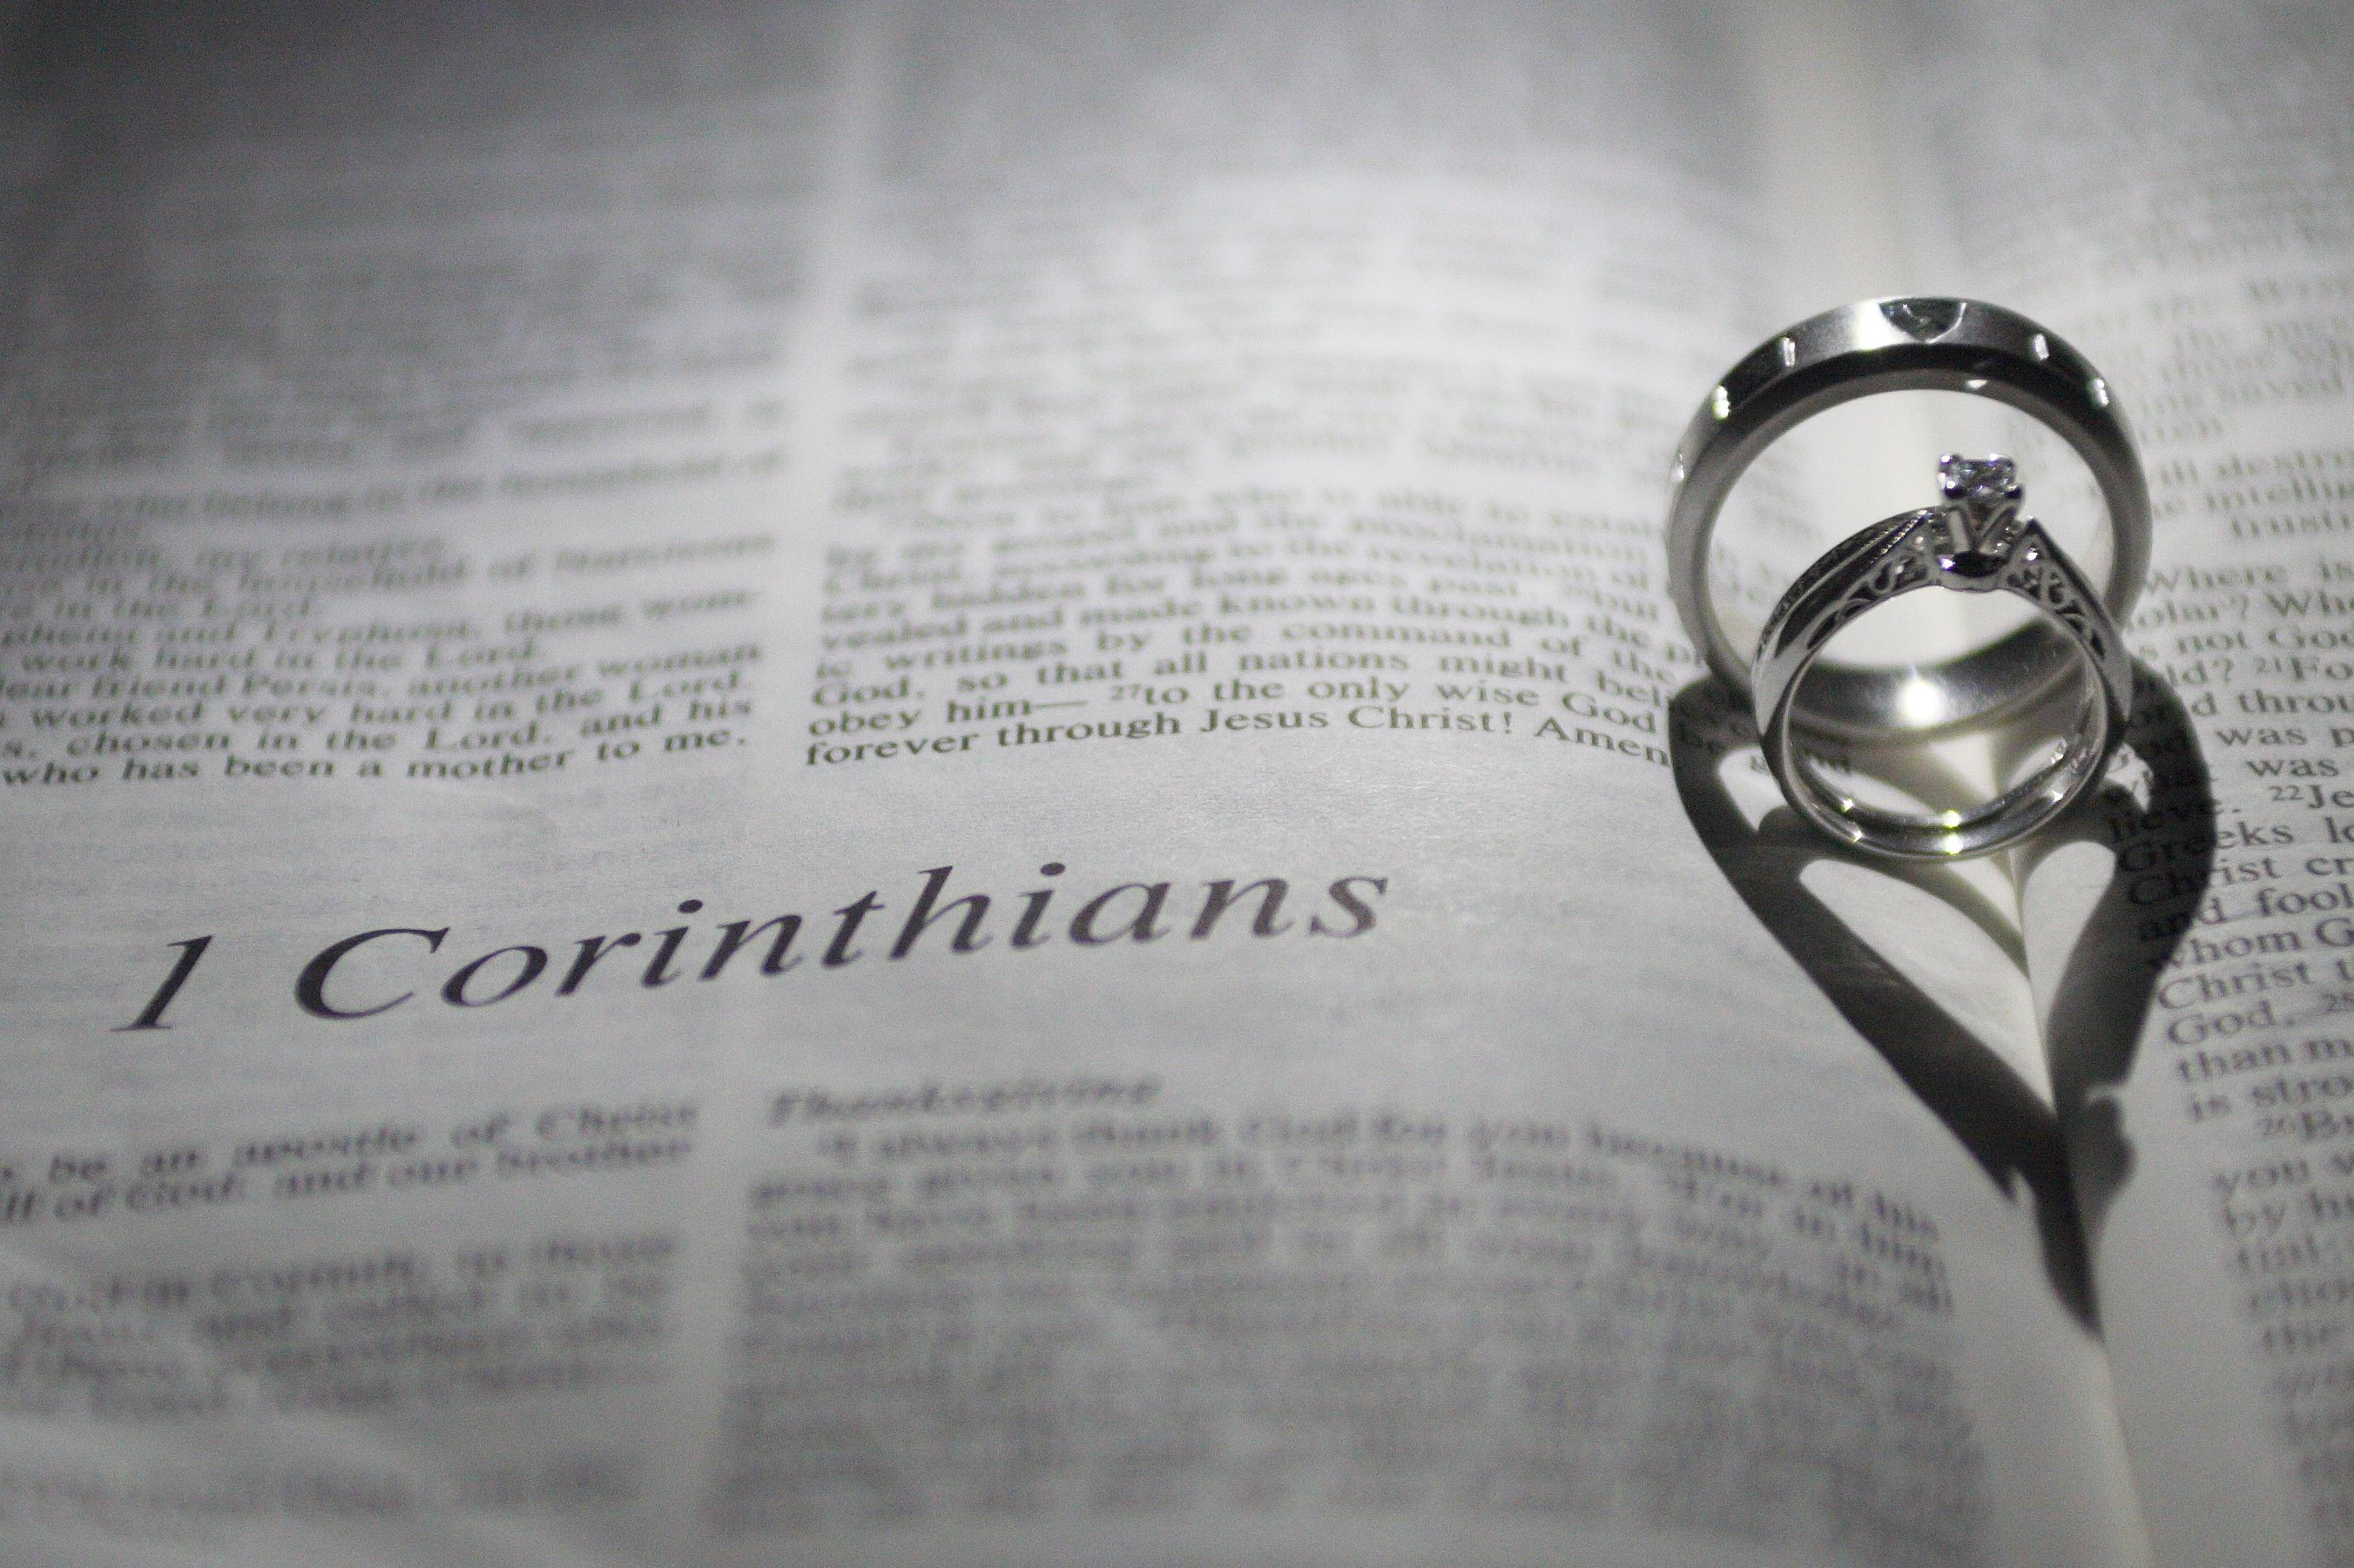 The book of 1 Corinthians chapter 13 in the Bible the chapter on